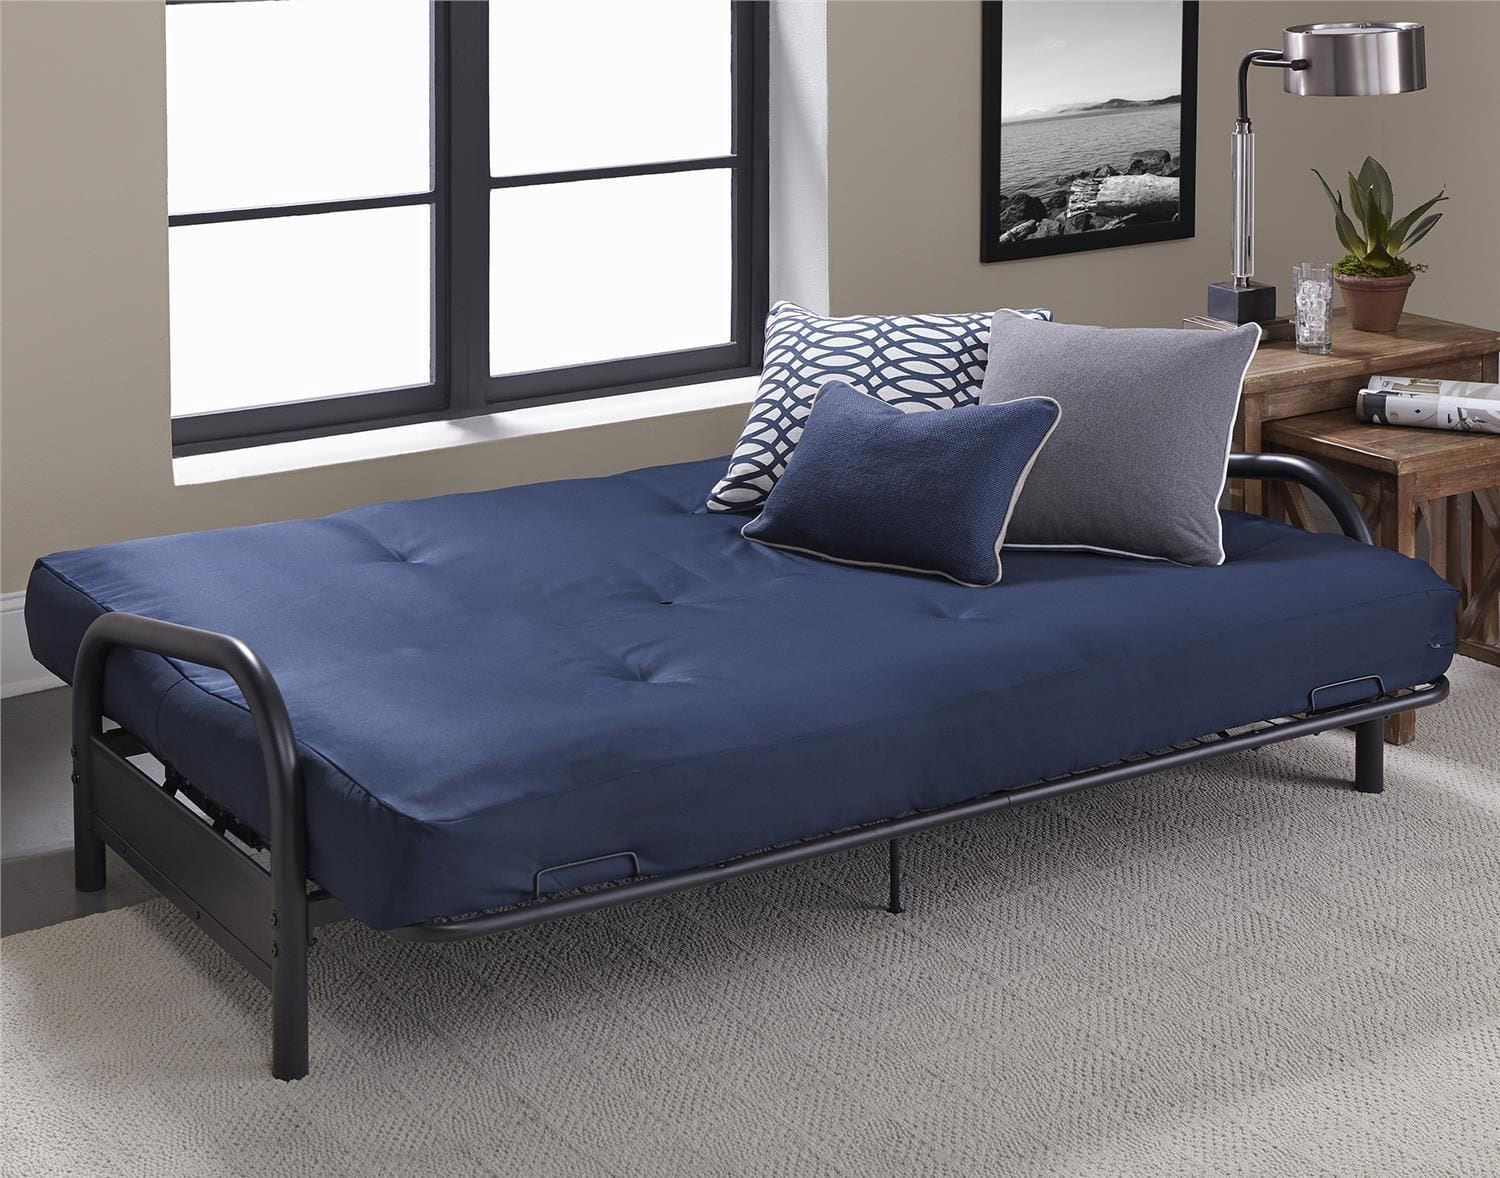 Japanese Futon Sets The Best Futon Mattress Brands And Buying Guide For 2019